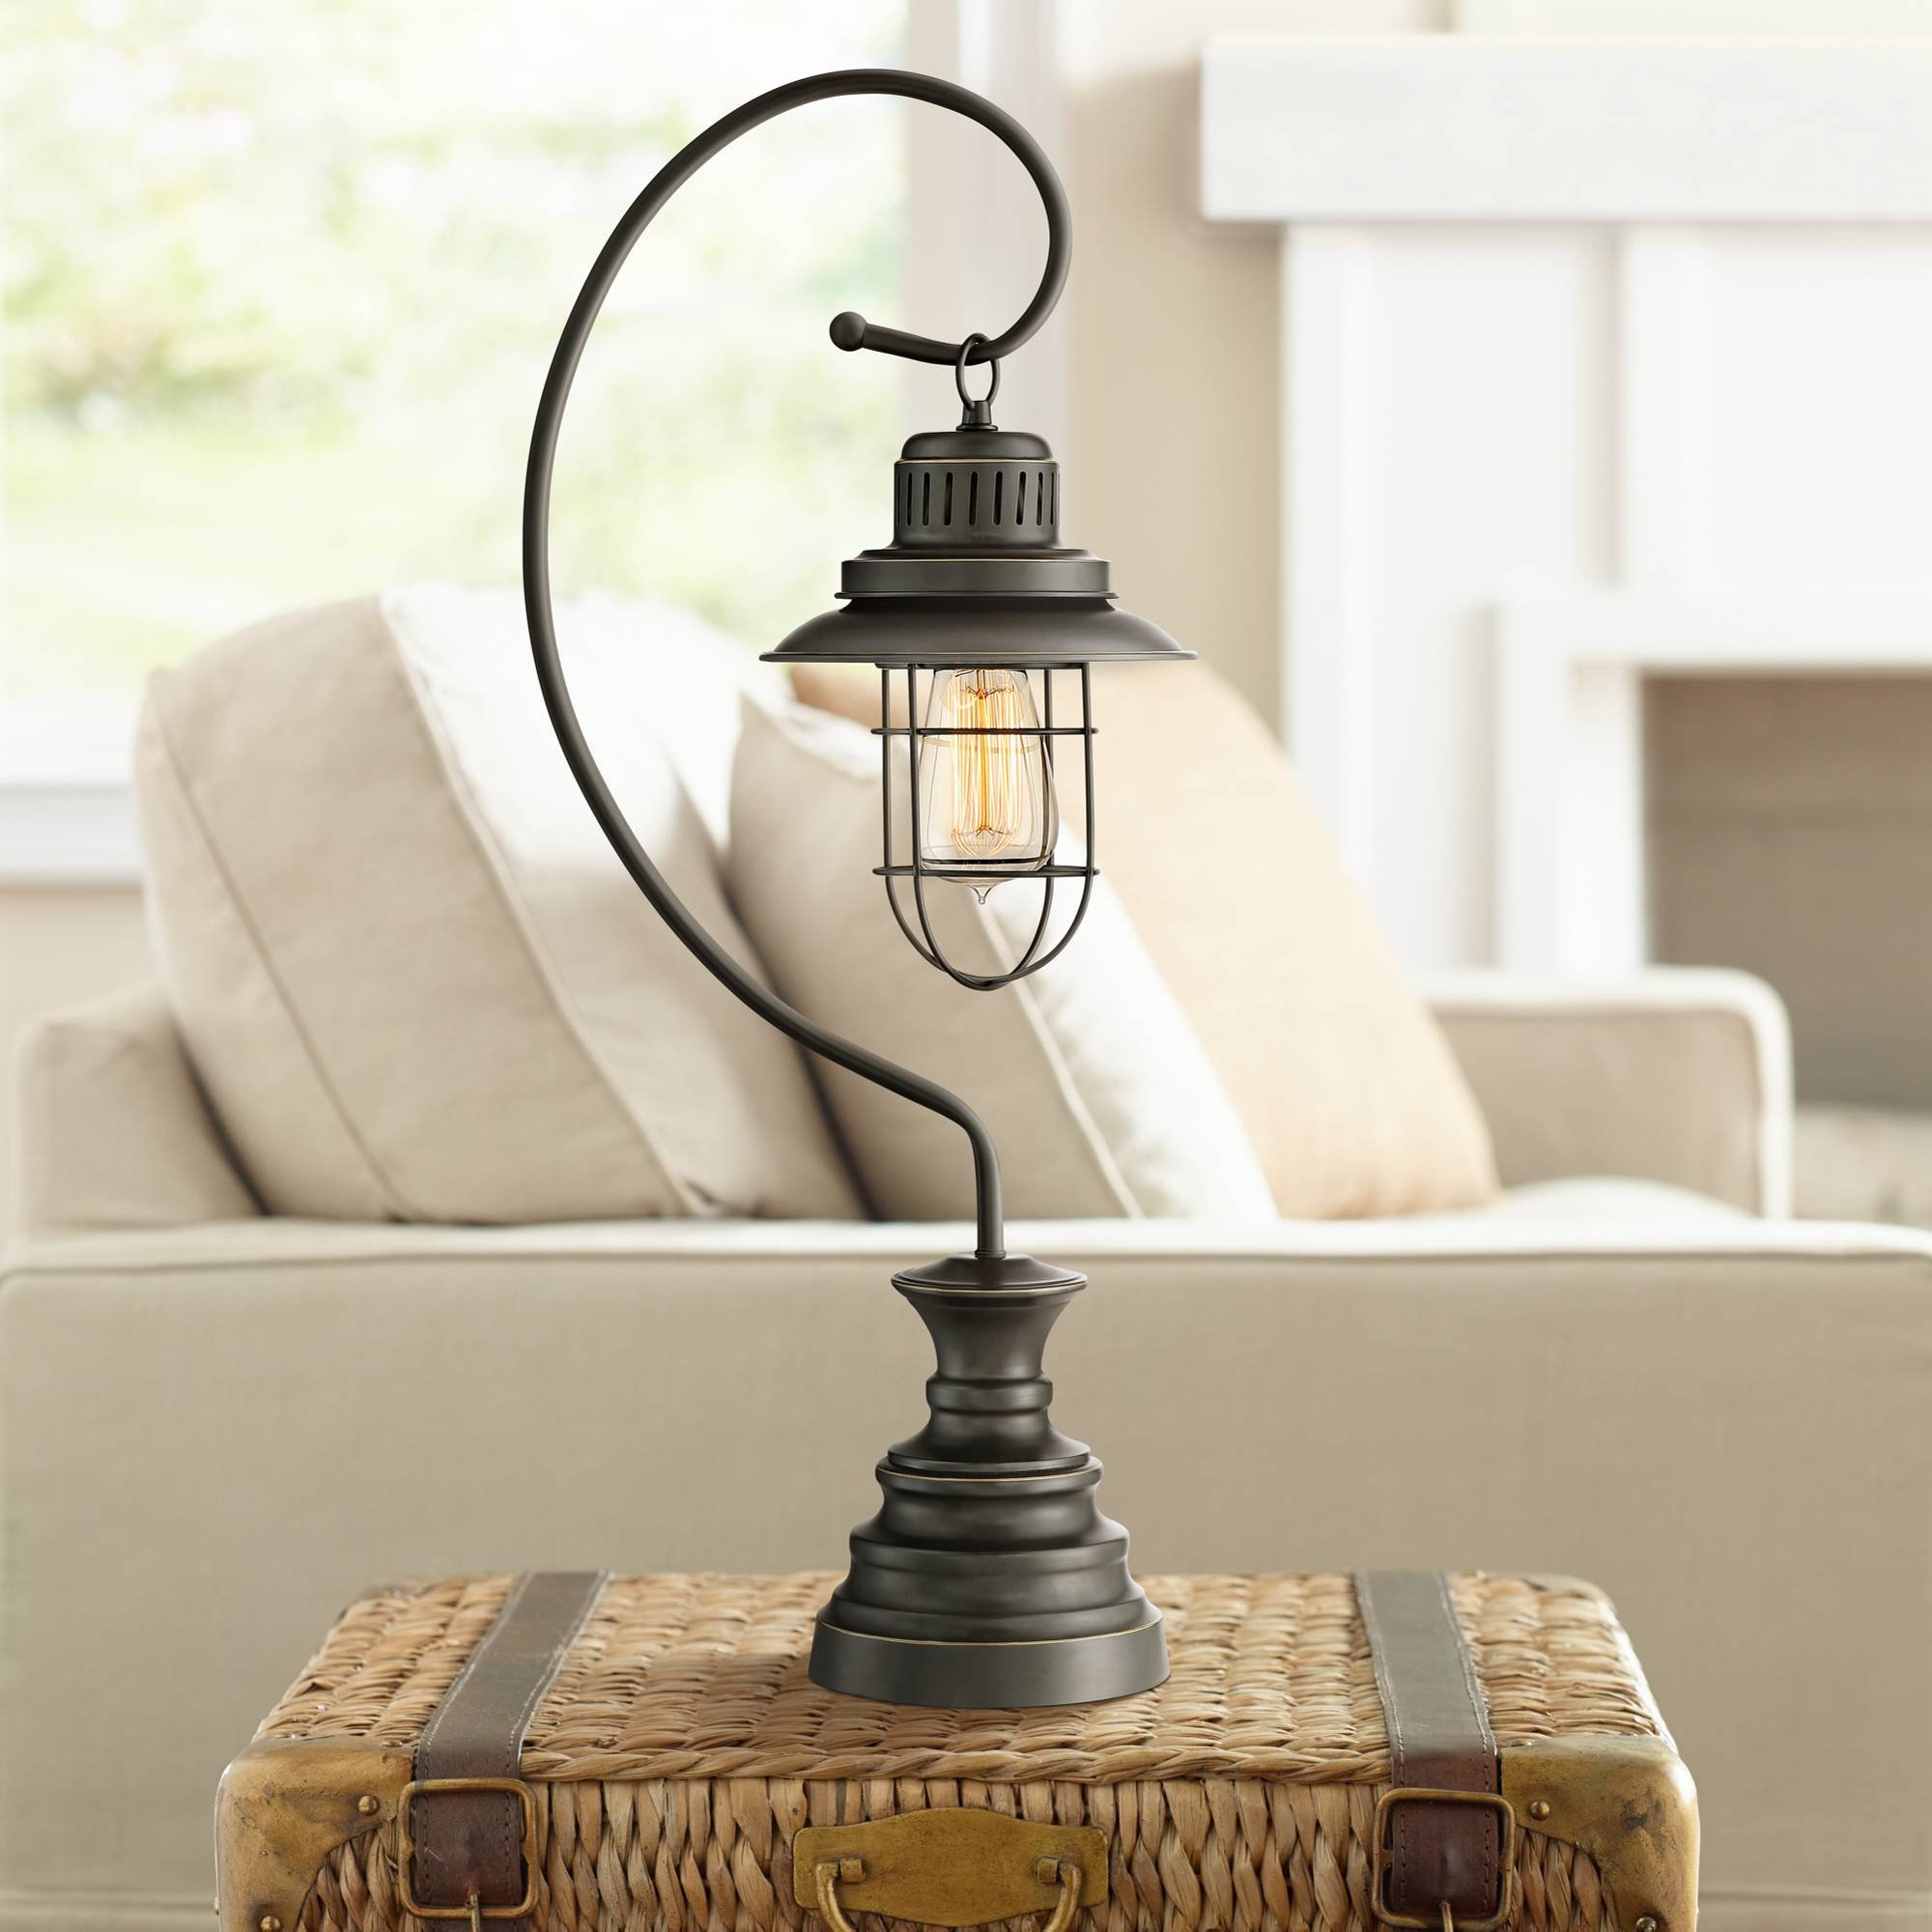 Ulysses Industrial Desk Table Lamp Dark Oil Rubbed Bronze Metal Wire Cage Shade Lantern for Living Room Bedroom Office - Franklin Iron Works